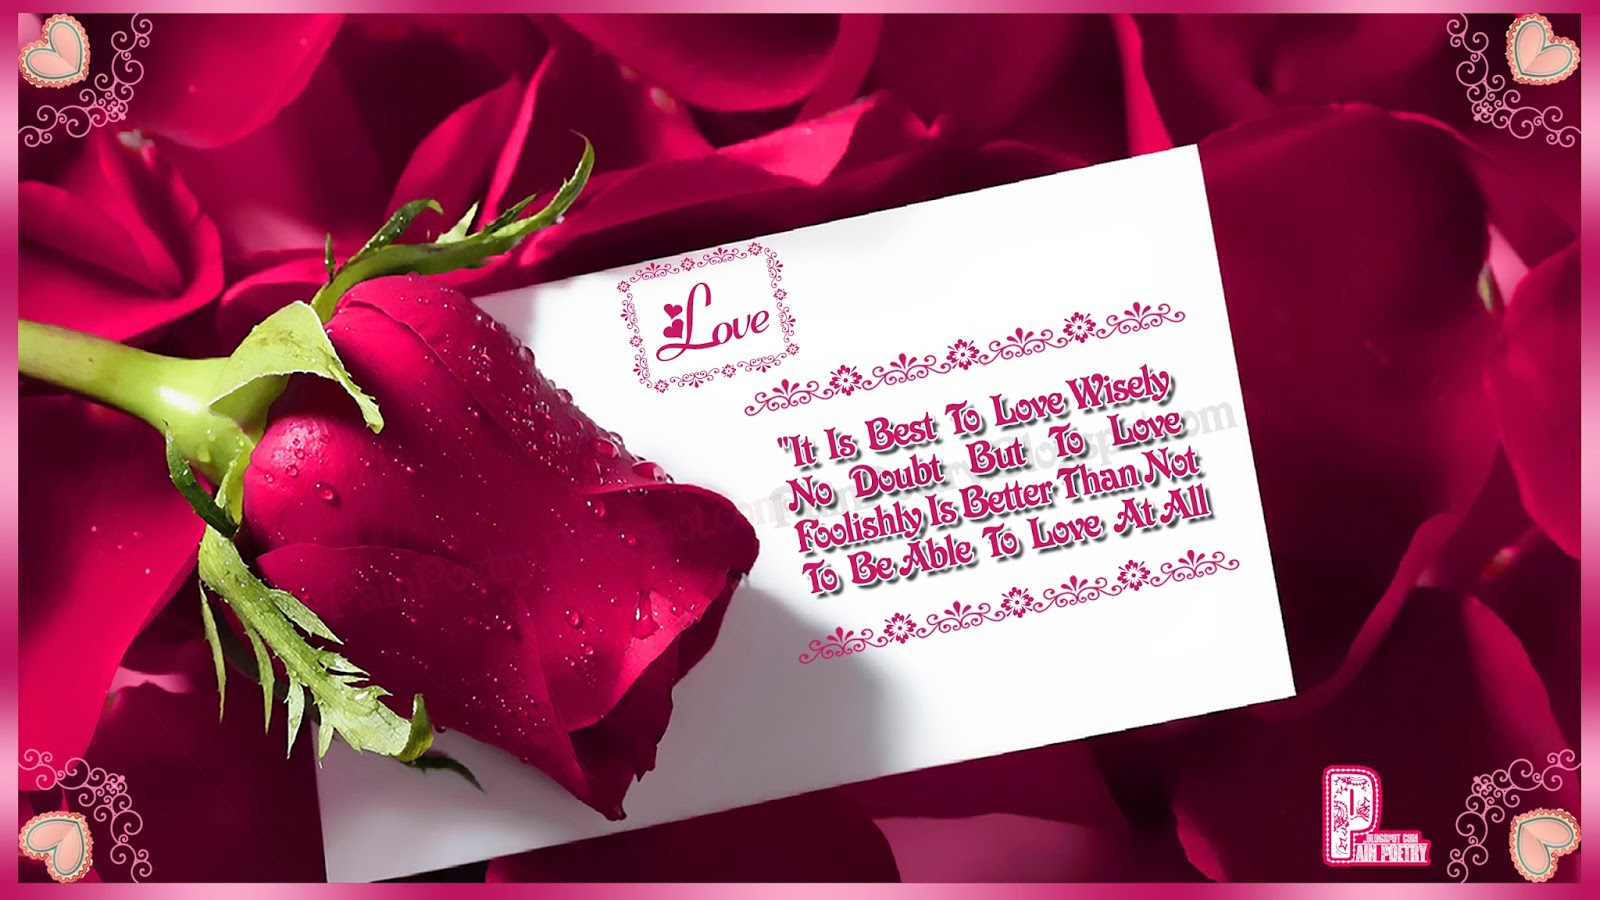 Love-Greetings-Quote-For-Lovers-With-Pink-Rose-Image-Photo-Wallpaper-HD